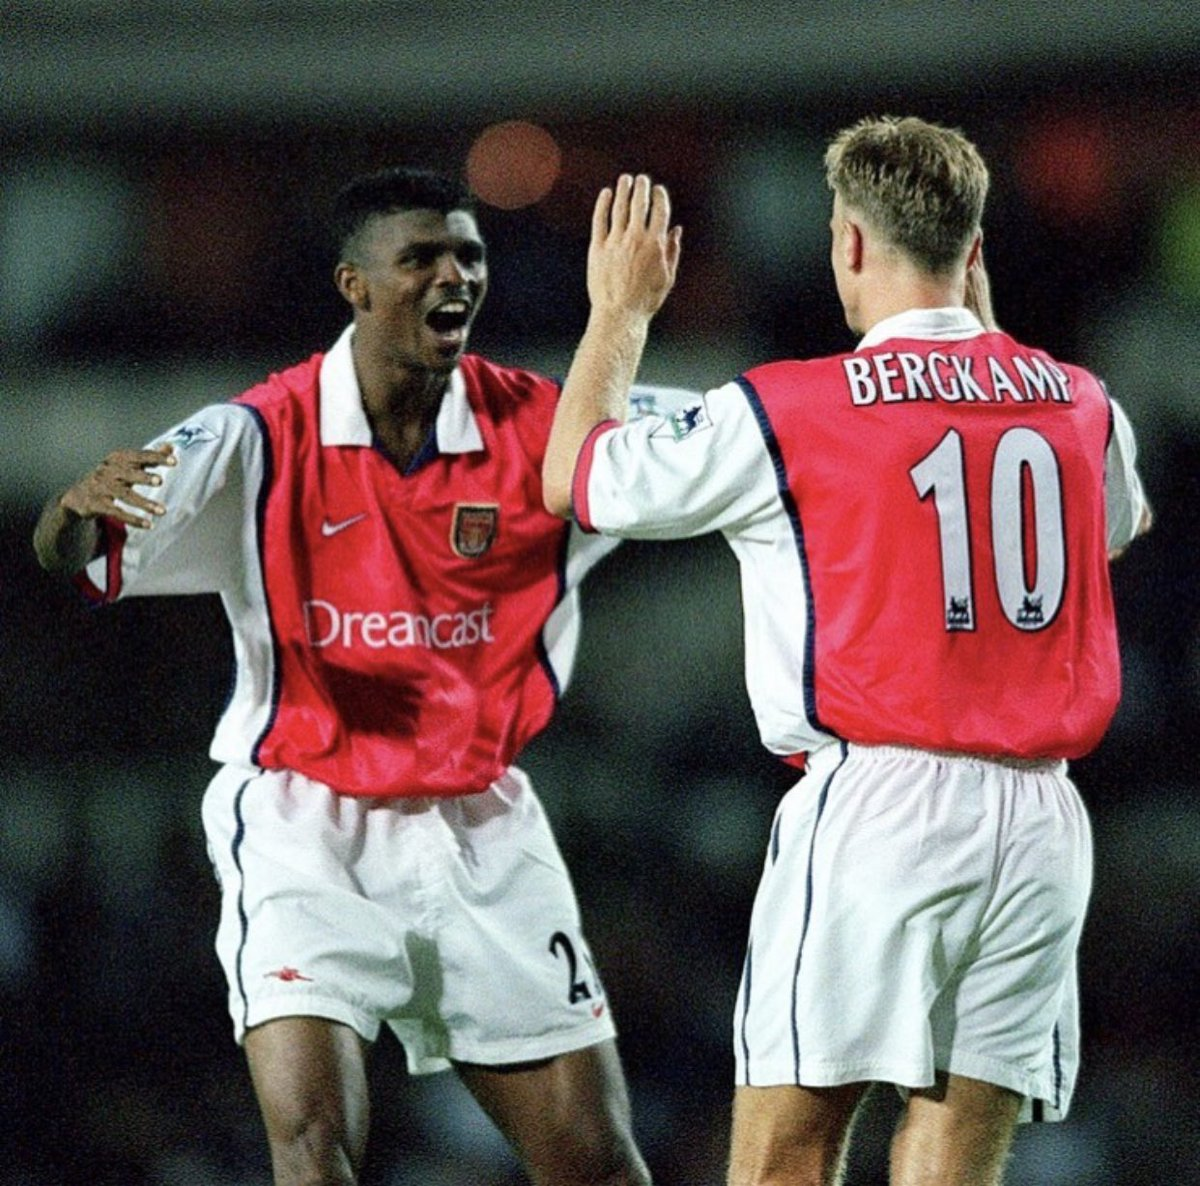 KAN U BELIEVE? What game is this and what a player @officialdennisbergkamp. The magic of this two can never go away 😆 @arsenal #coyg #gunners #holland #amsterdam @afcajax @inter #world @fifaworldcup #legend #africa #nigeria #respect #positivevibes